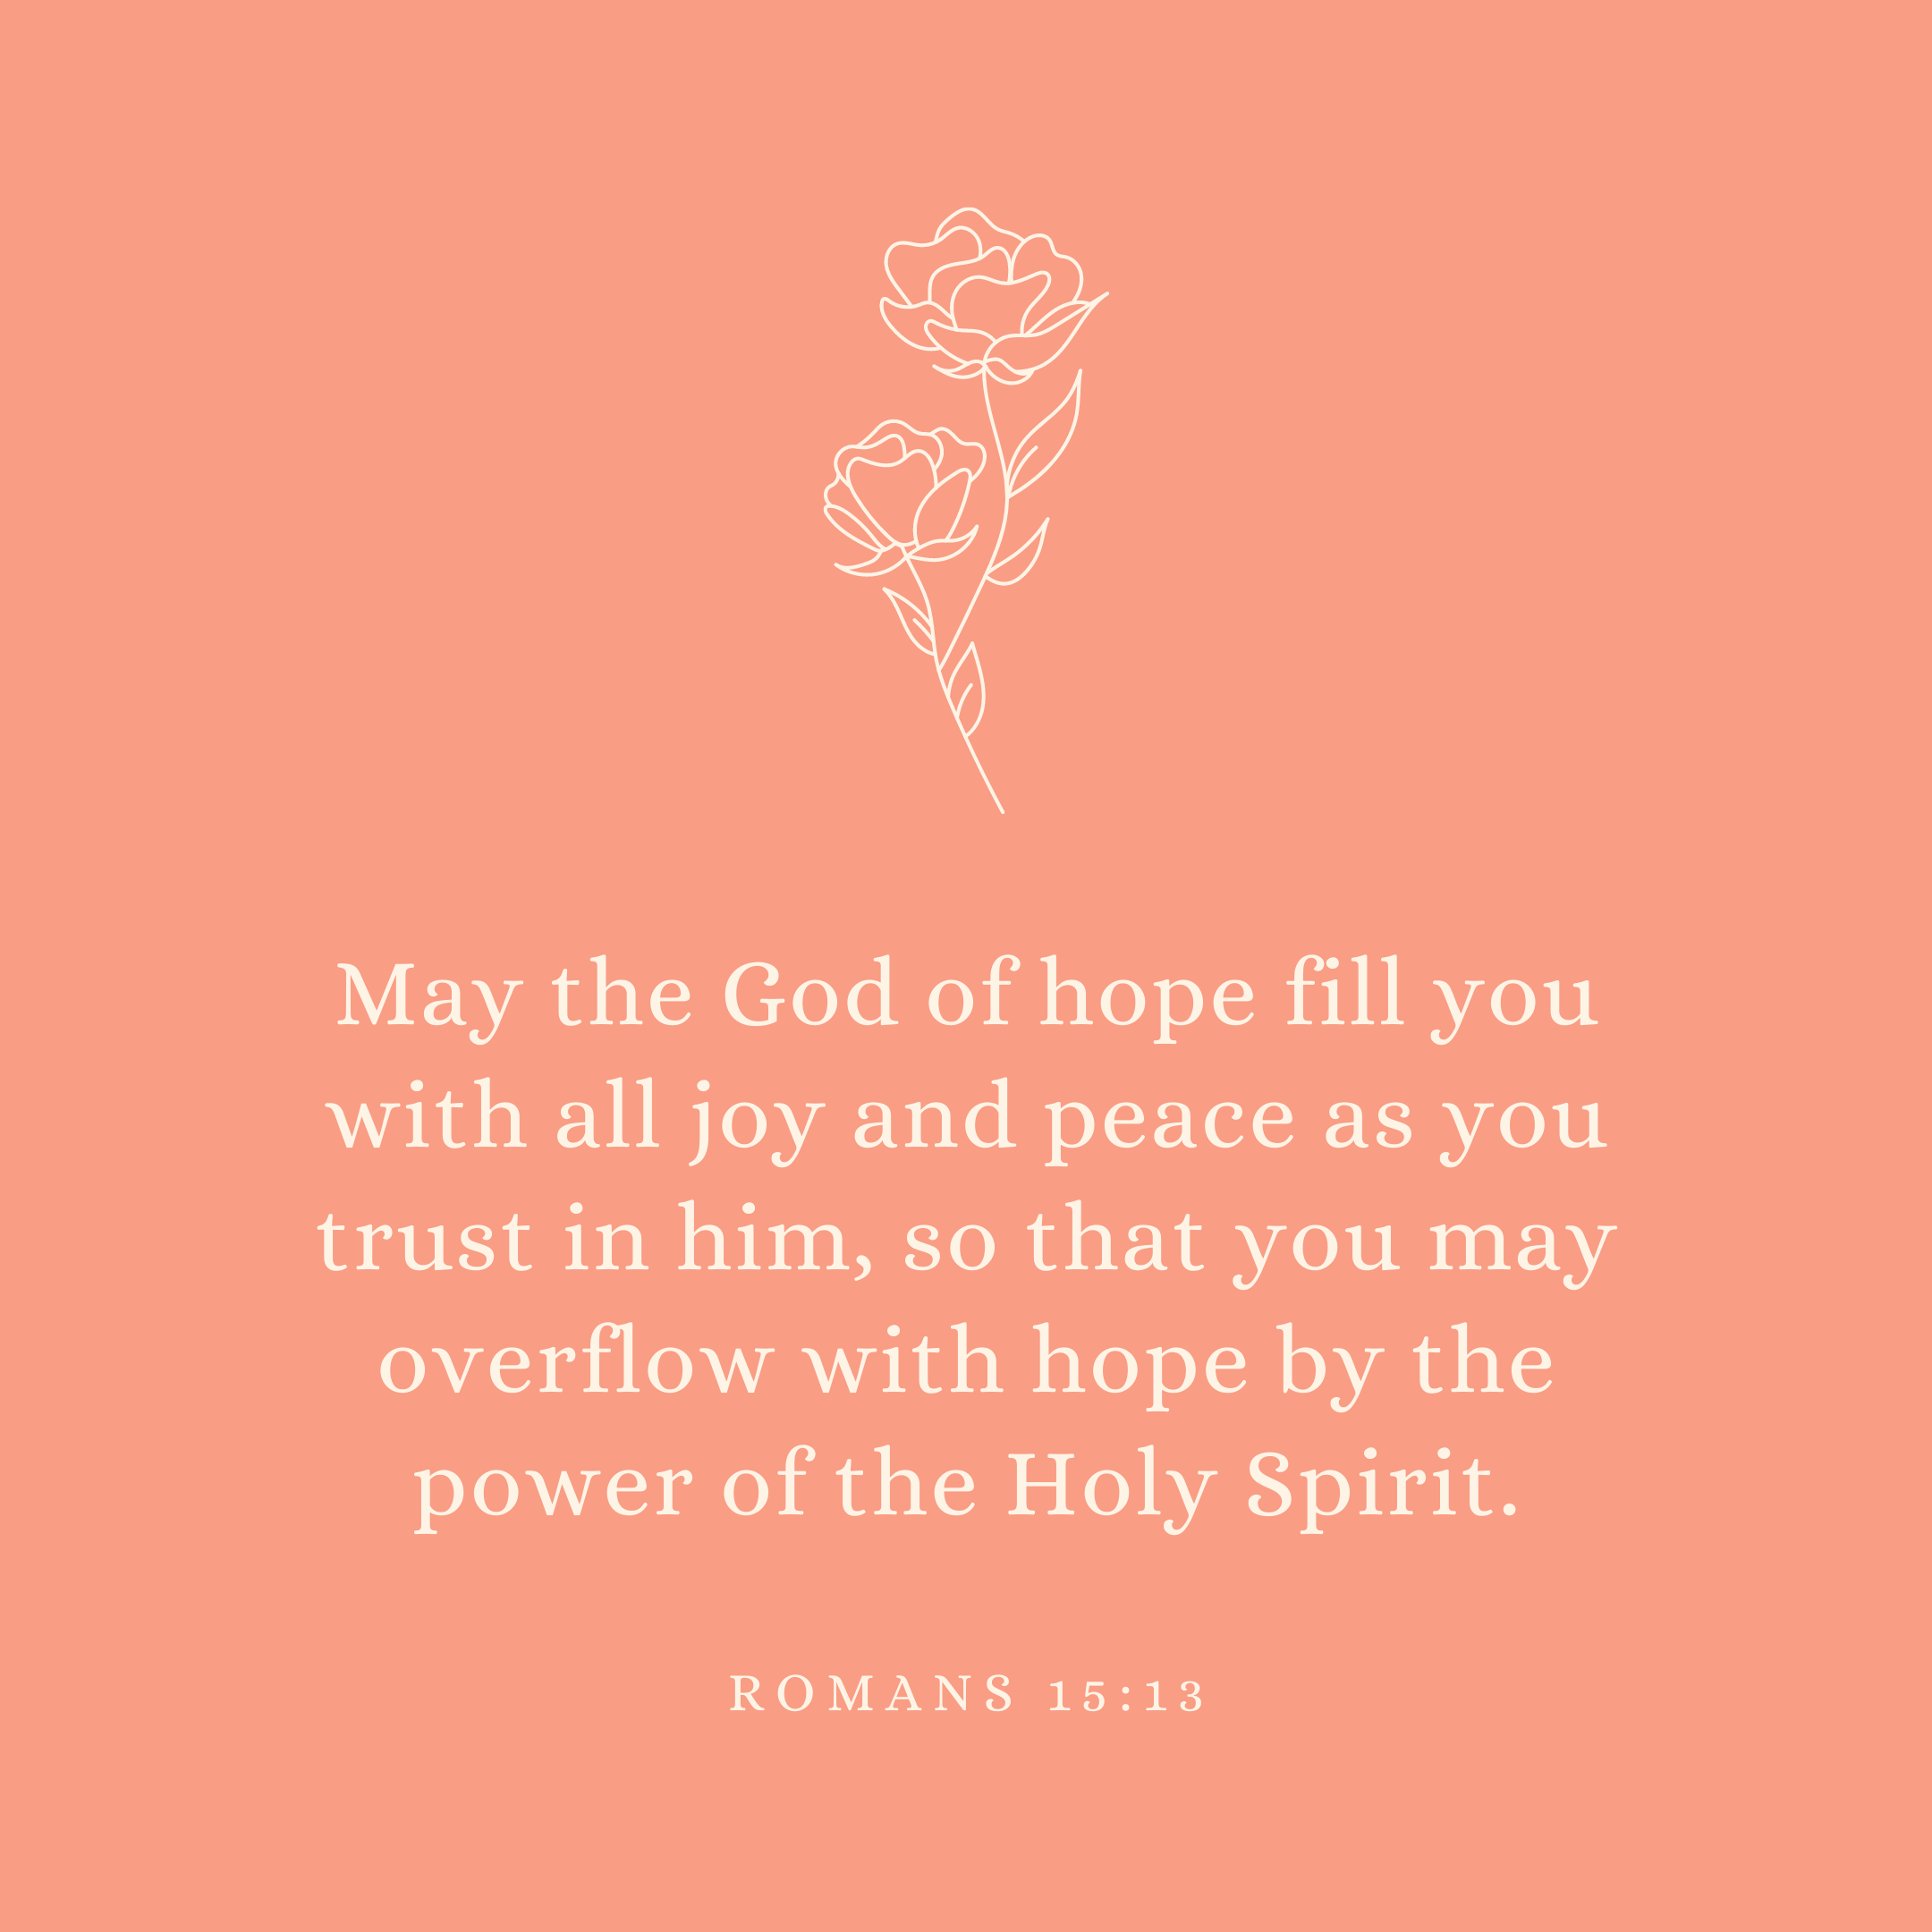 Romans 15:13 May the God of hope fill you with all joy and peace as you trust in him, so that you may overflow with hope by the power of the Holy Spirit.